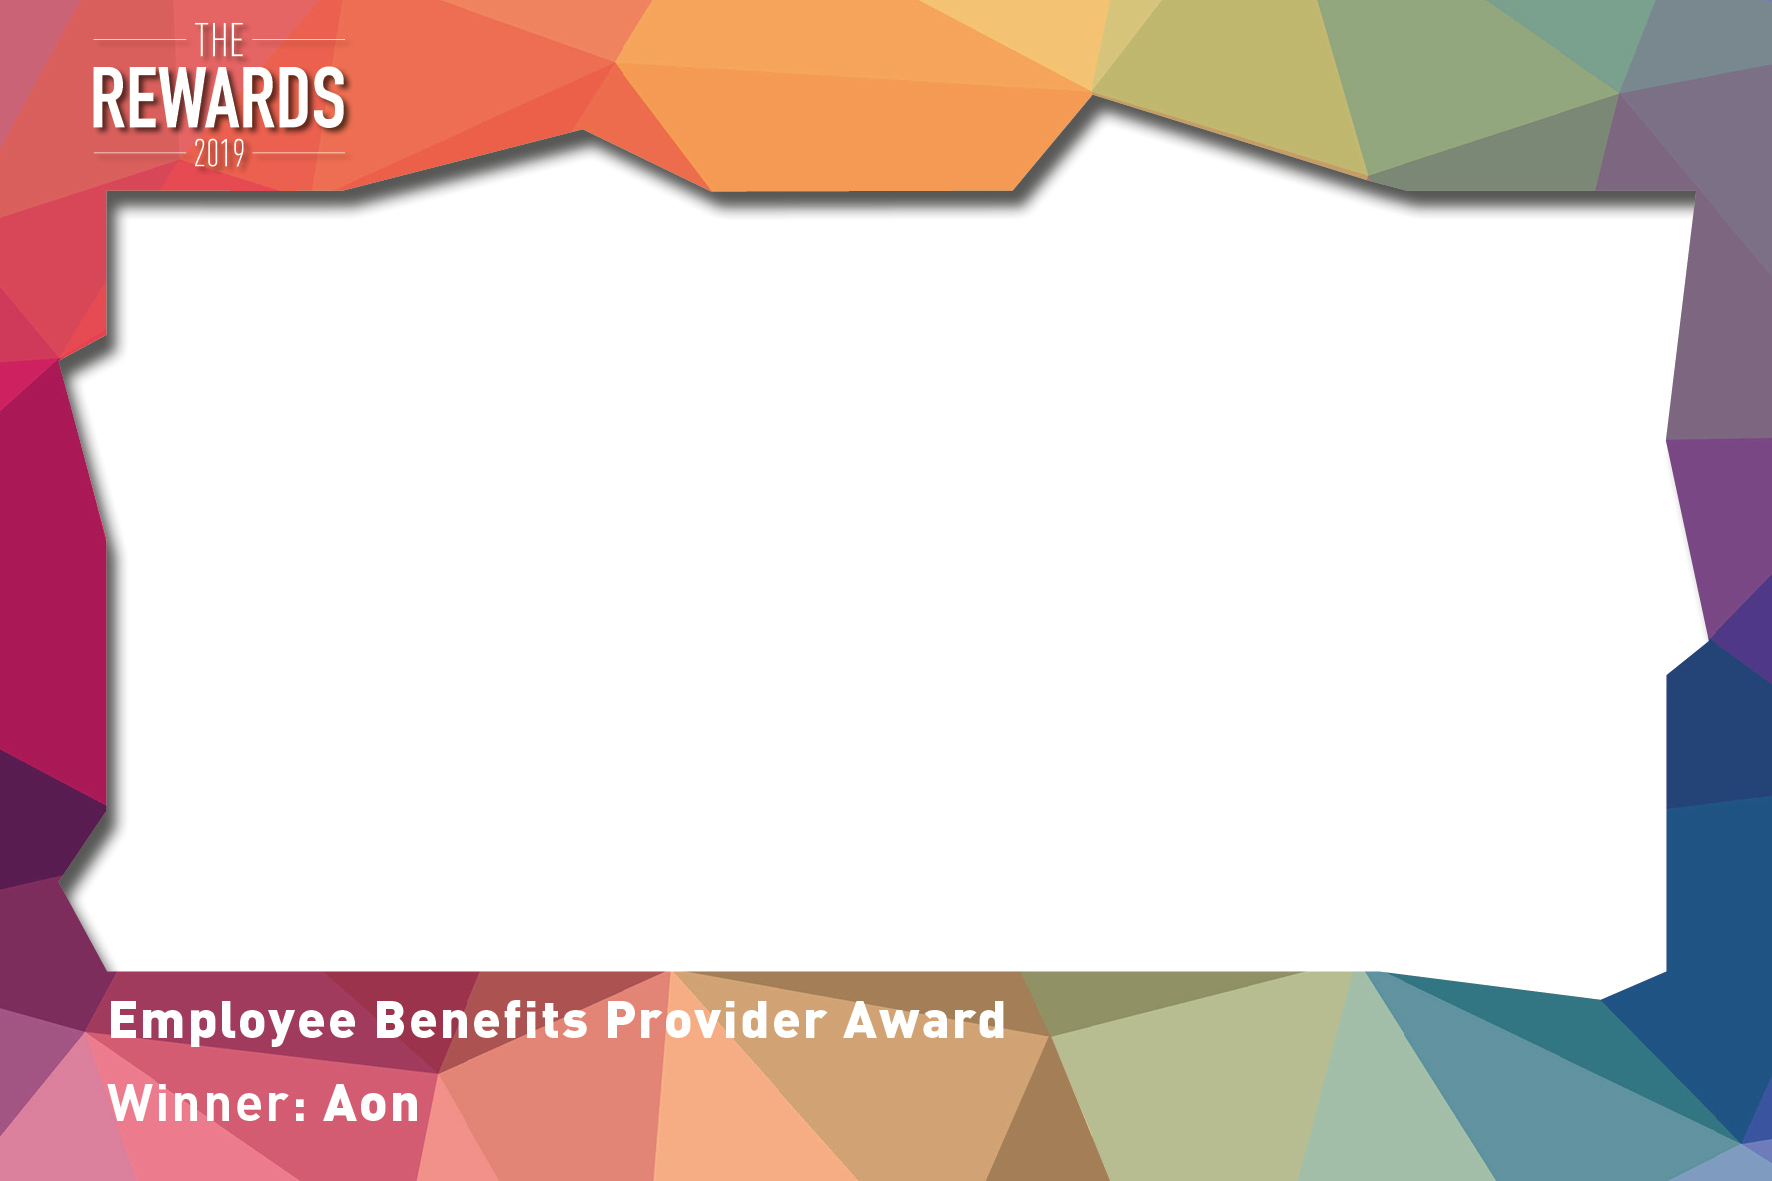 Employee Benefits Provider Award